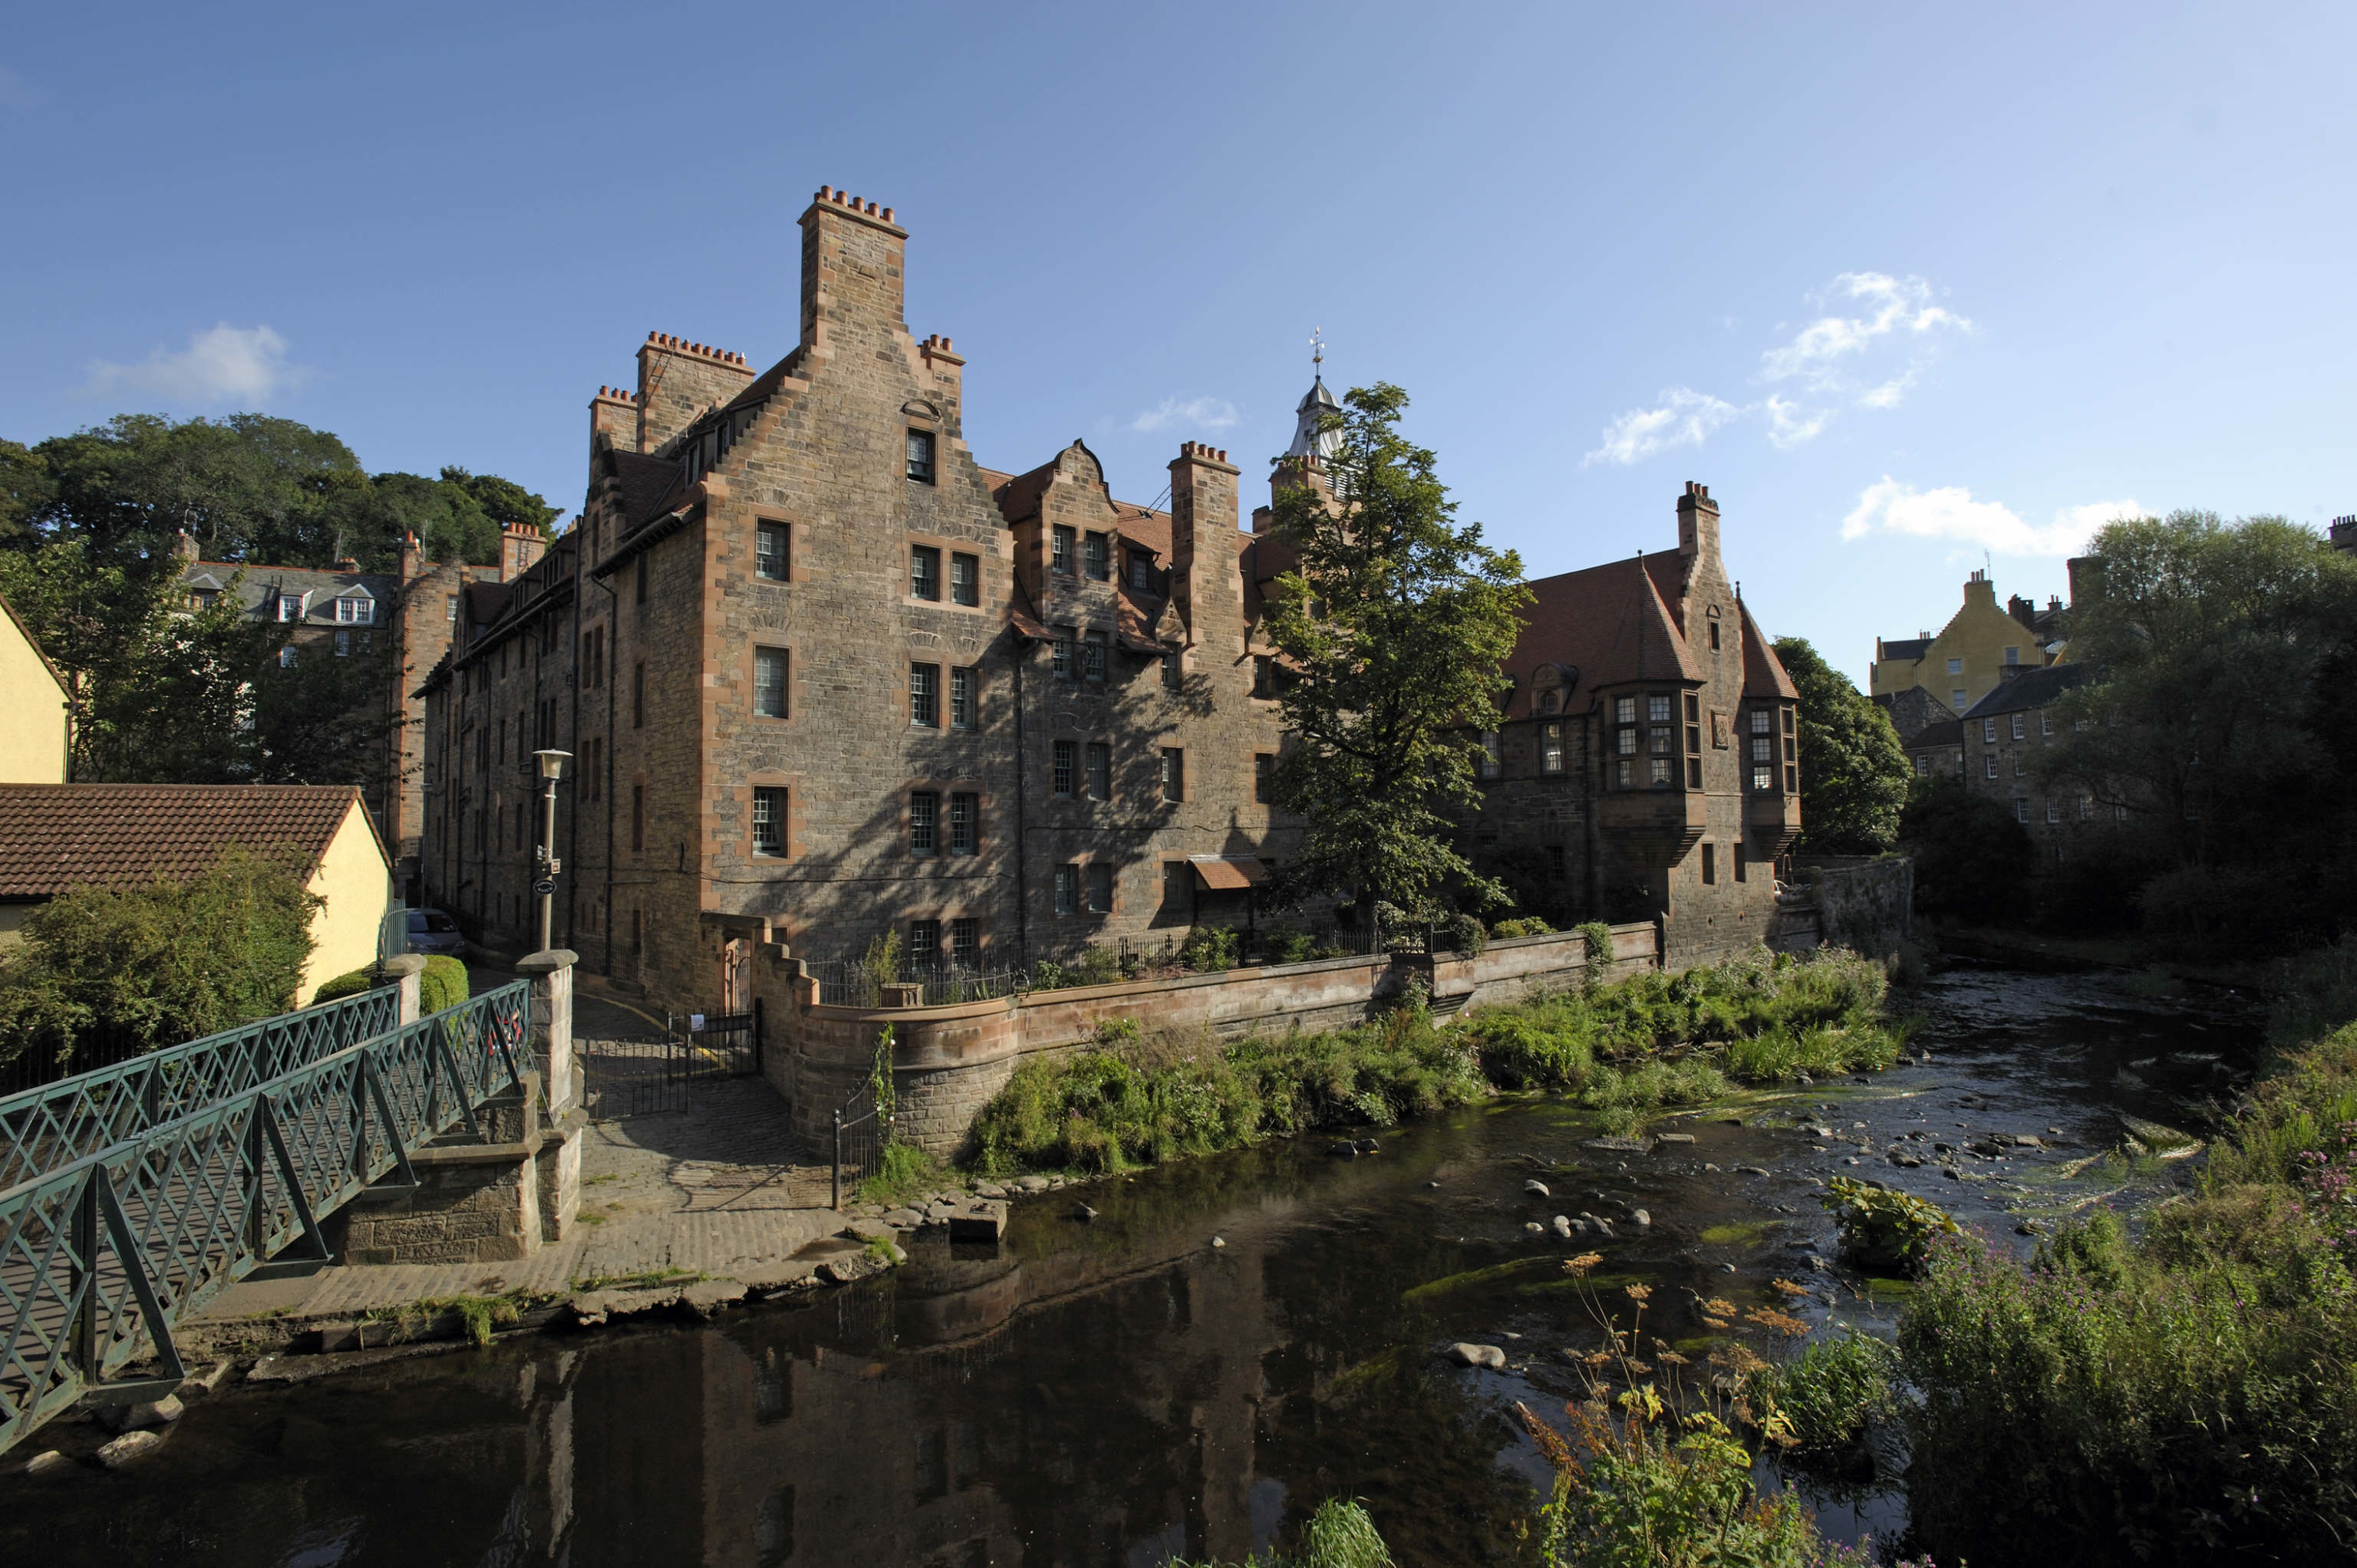 A view of Well Court from the Water Of Leith